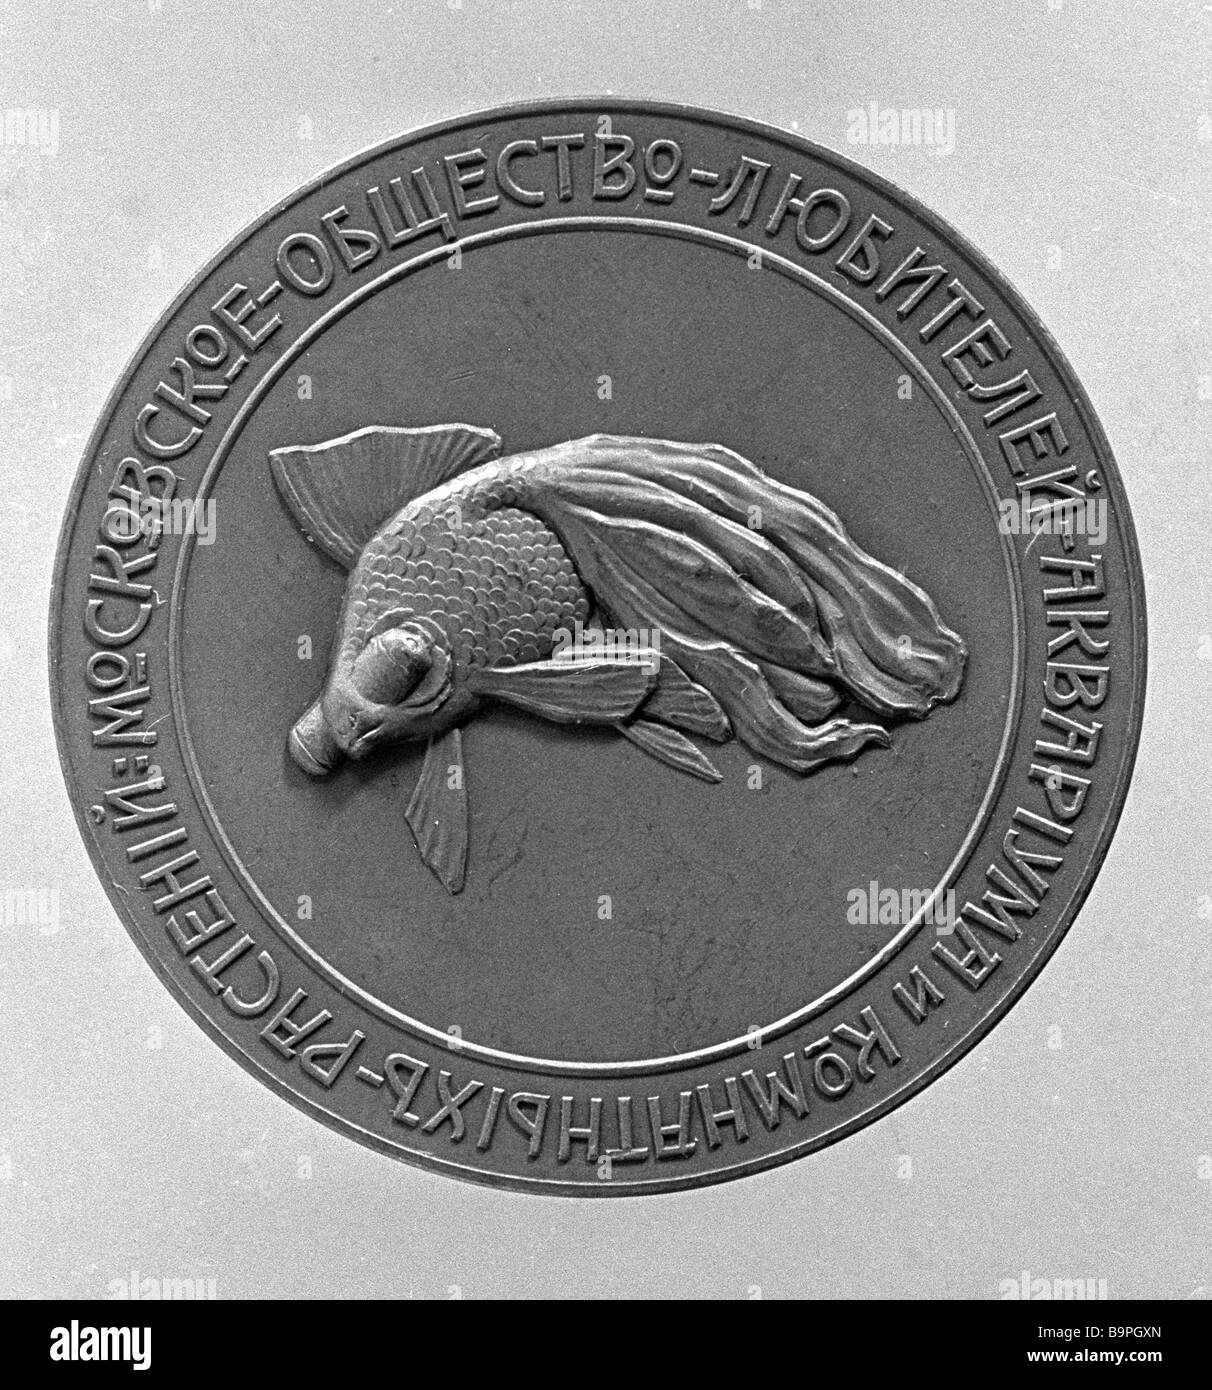 Reverse of the Moscow Aquarium and houseplant enthusiasts Society medal The collection of the Museum of History - Stock Image